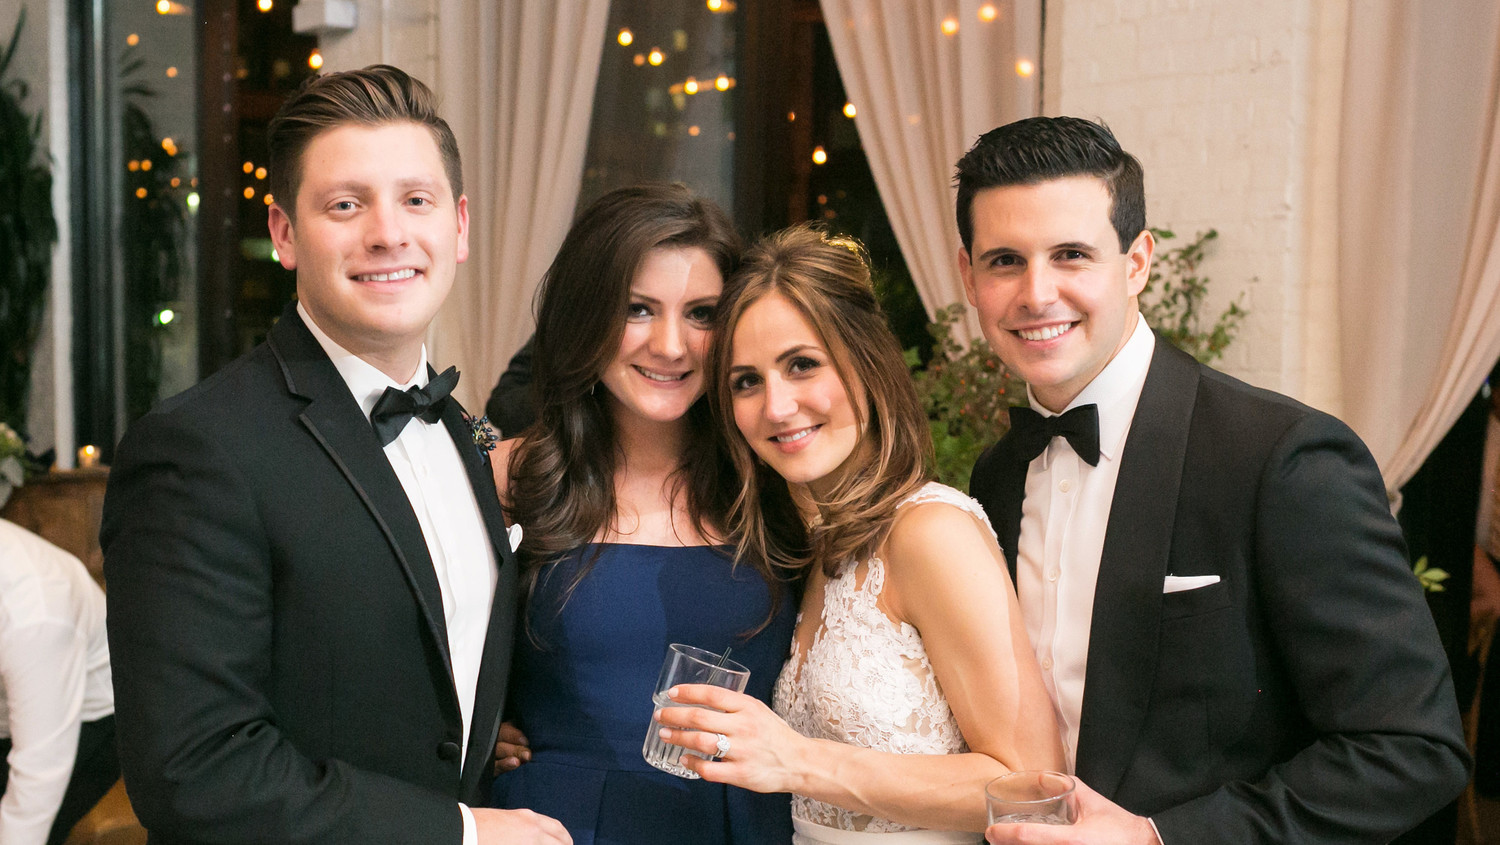 What The Maid Of Honor Needs To Know About Giving A Toast Martha